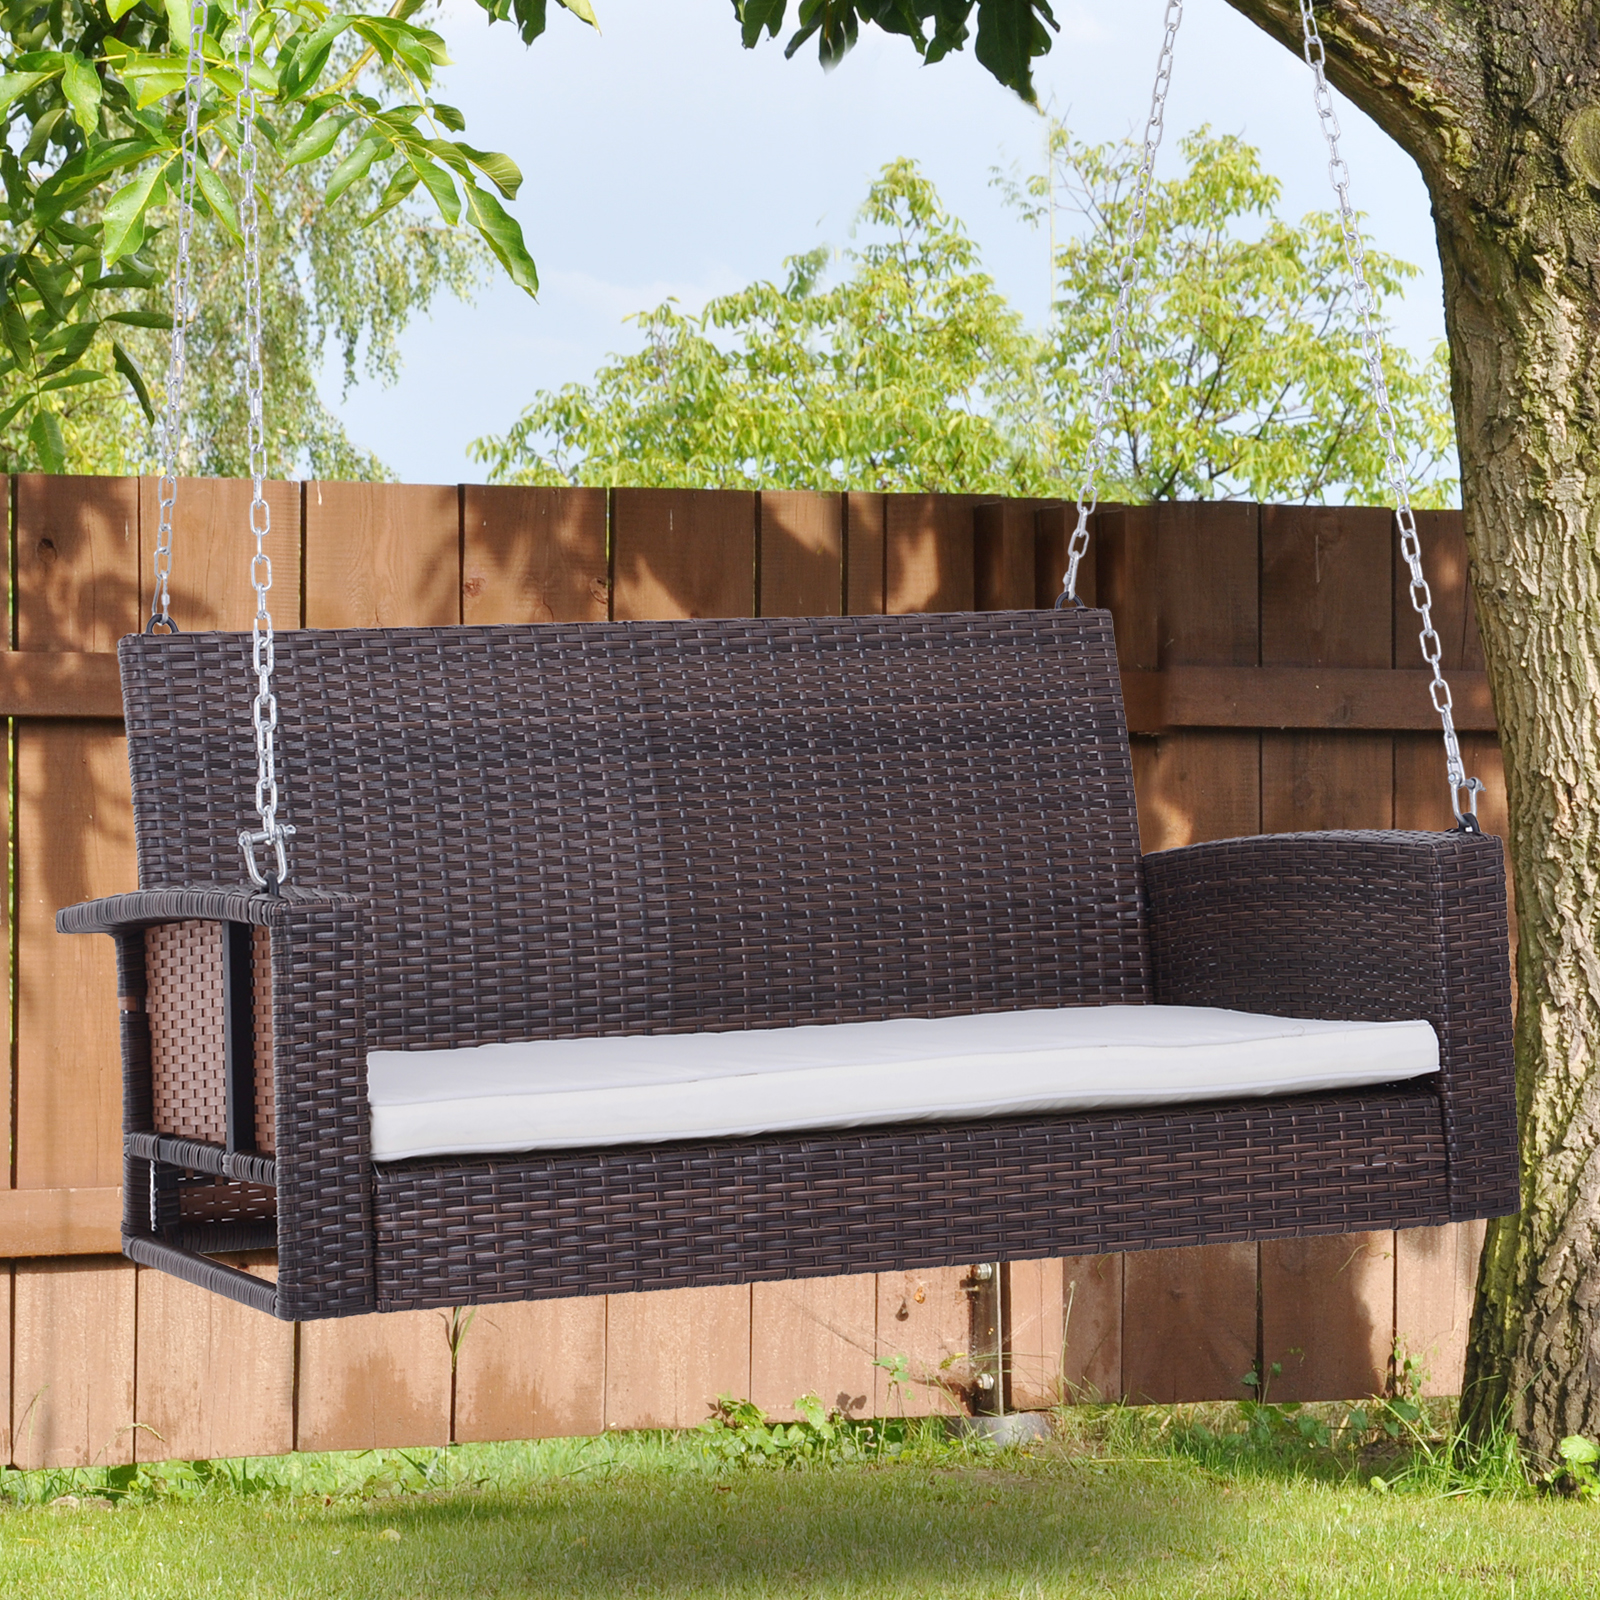 Outsunny 2 Person Outdoor Wicker Porch Swing Chair Garden